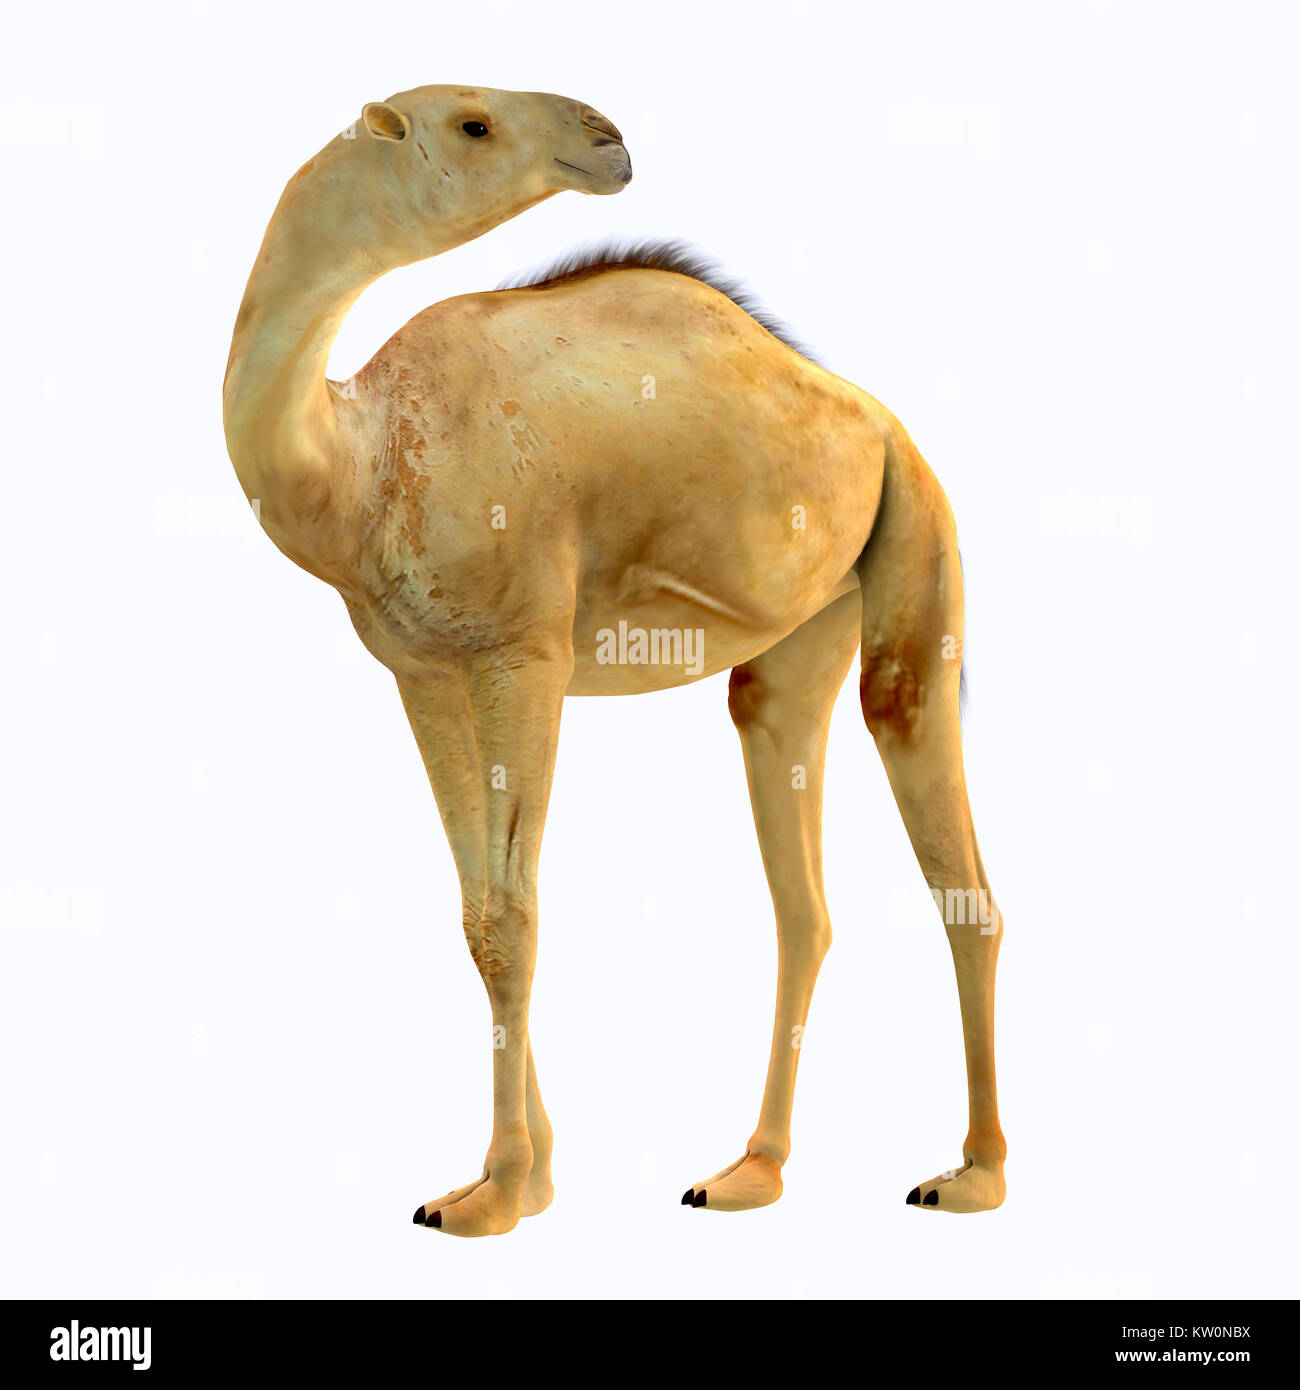 Camelops hesternus Side Profile - Camelops was a camel-type herbivorous animal that lived in North America during - Stock Image